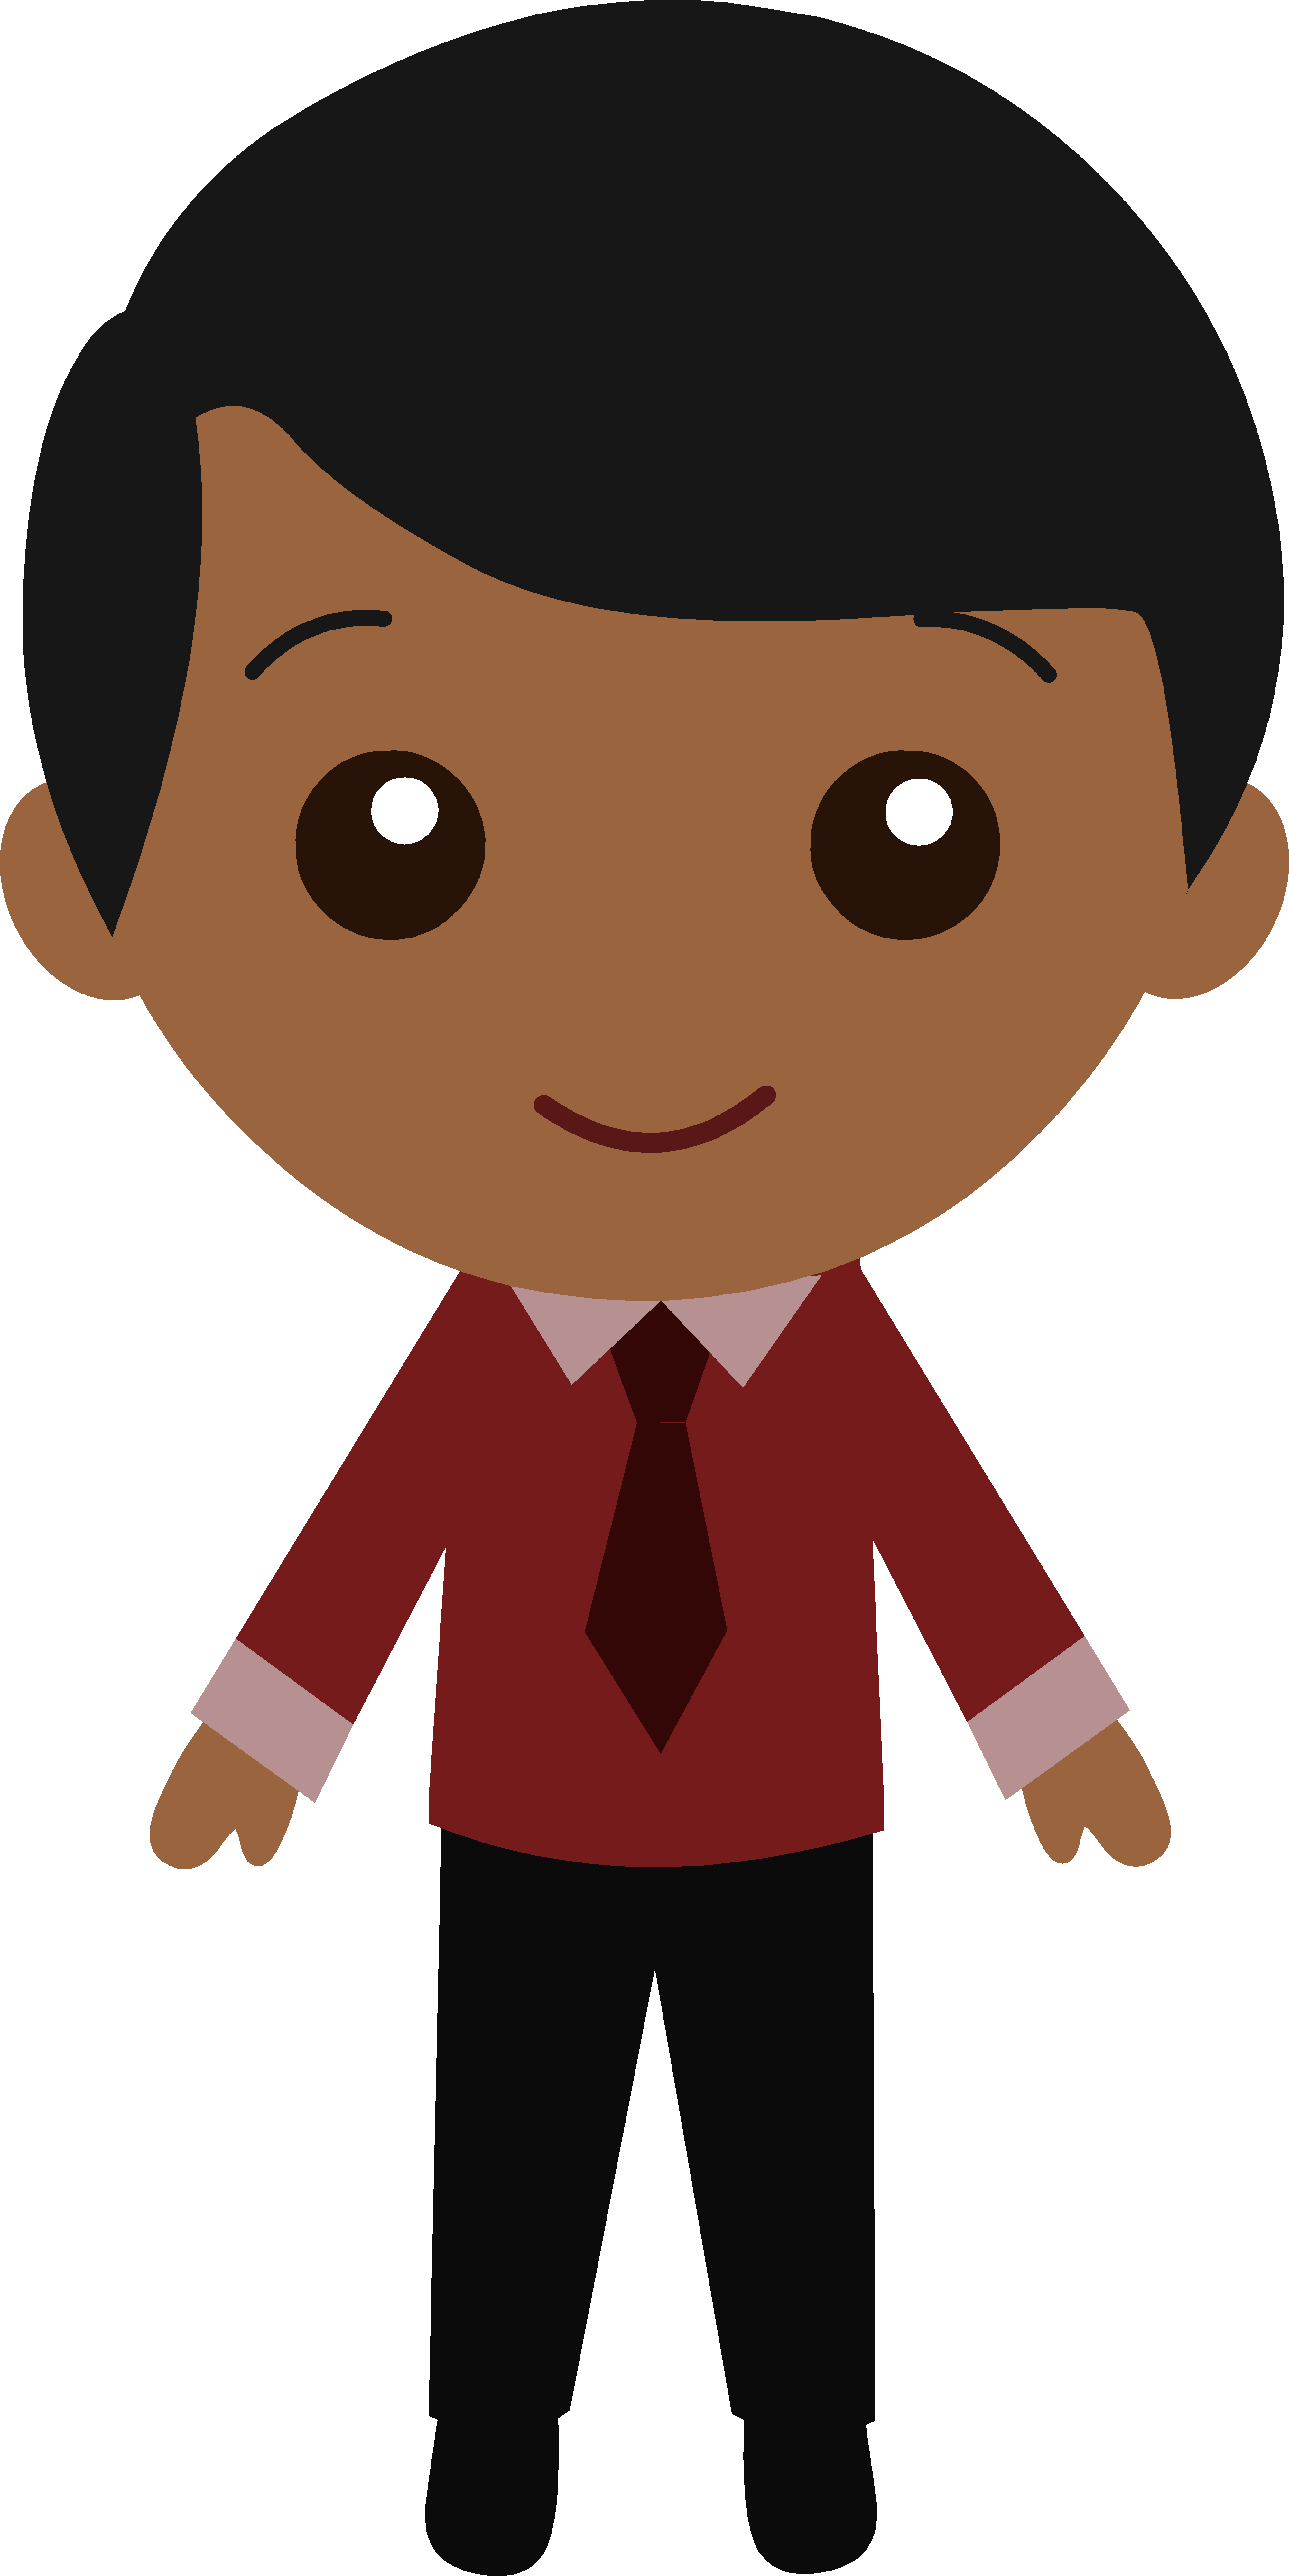 Free Boy Clipart Transparent, Download Free Clip Art, Free.